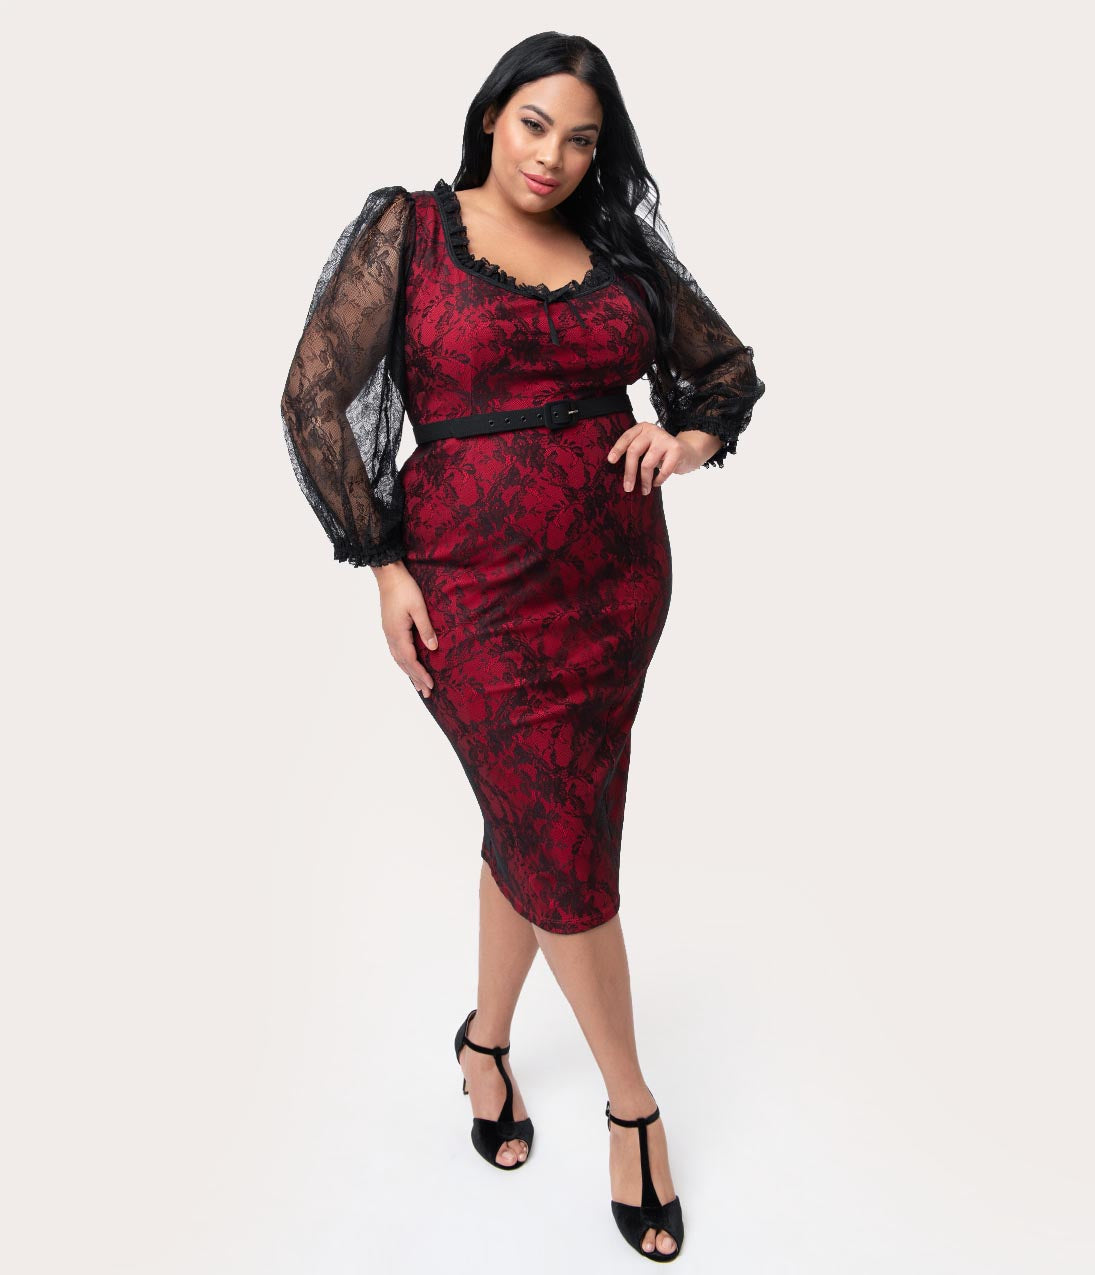 a0be1f0415ba1 1950s Prom Dresses   Party Dresses Vixen By Micheline Pitt Plus Size Red Black  Lace Decadence